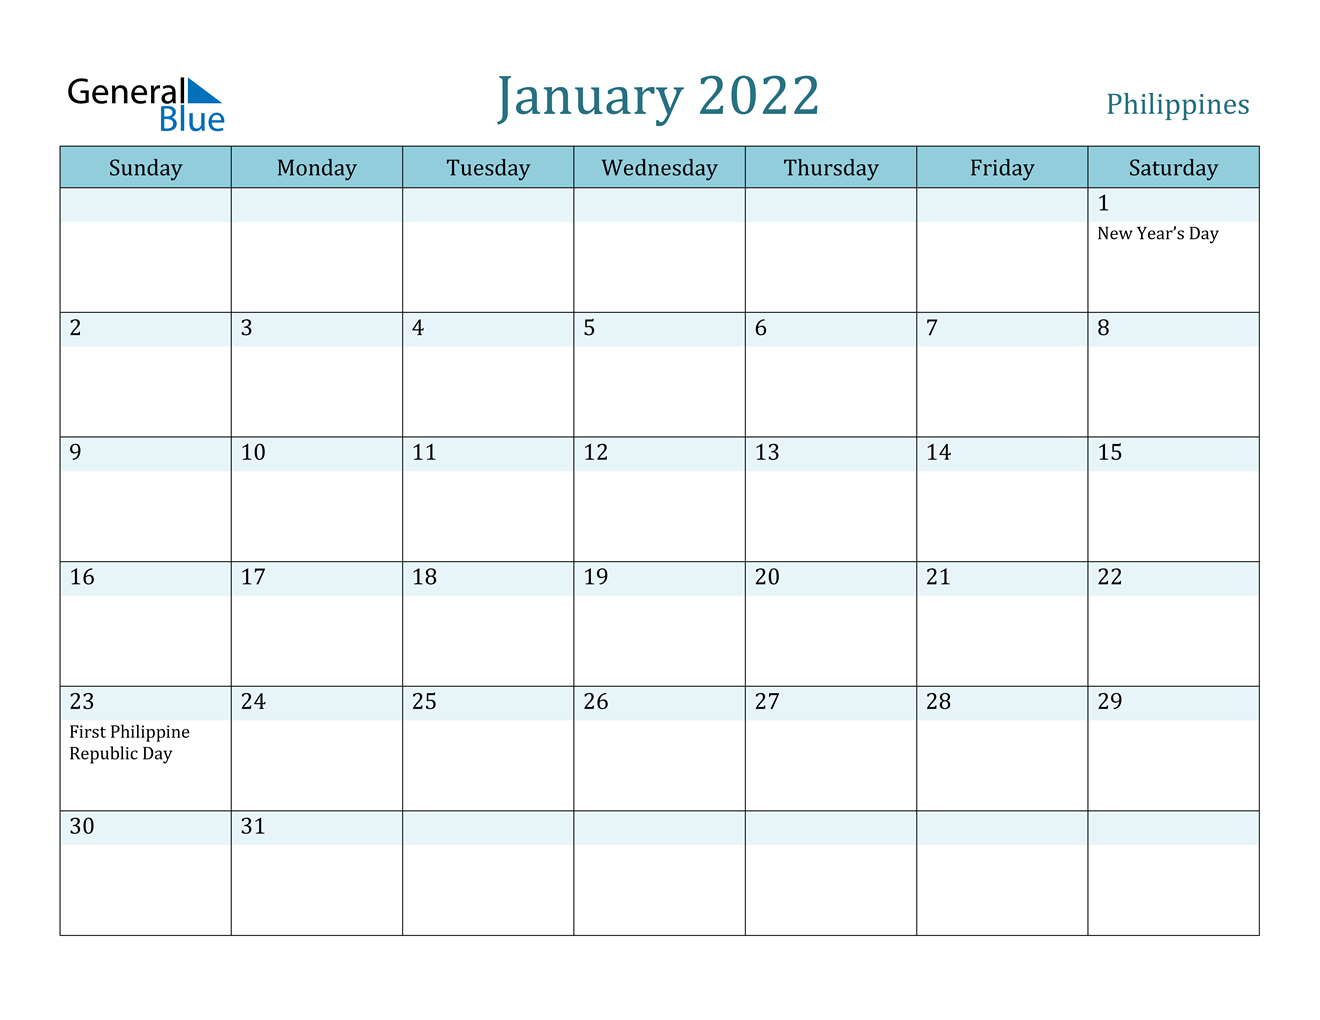 January 2022 Calendar - Philippines